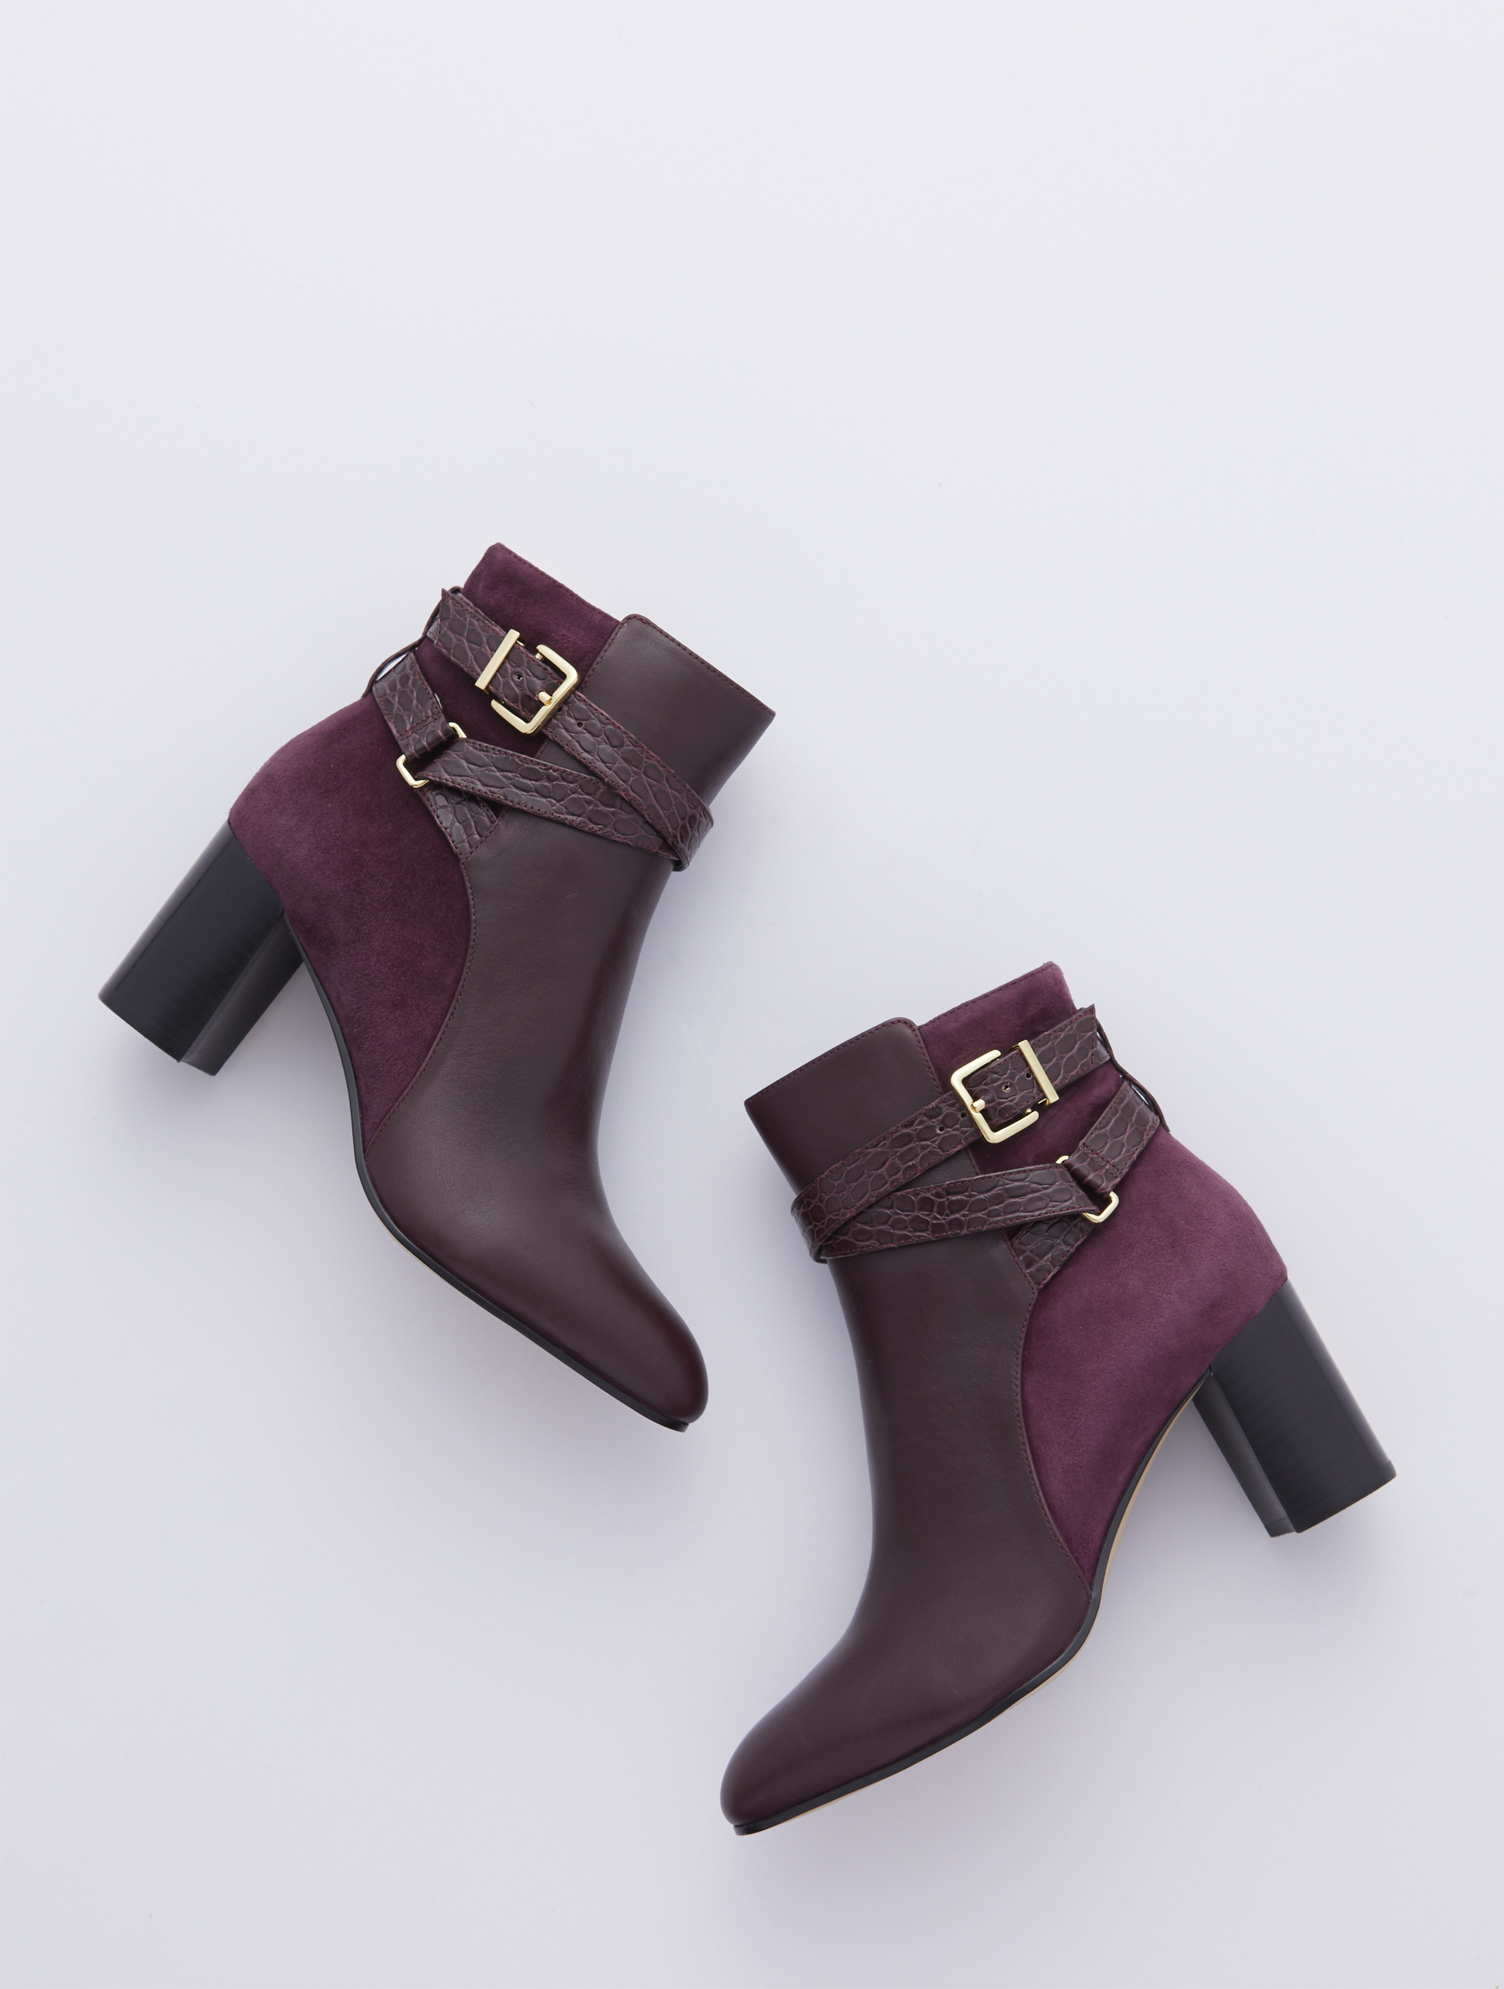 Versatile leather booties with a sleek silhouette, feminine flare heel and almond-shaped toe. Inside-step zip allows for easy on and off. Features Gift Box/Gift Wrap is not available for this item 3 inches heel Almond toe 3MM Memory foam footbed Side Zip Imported Material: 100% Leather Simone Vachetta Ankle Boots - Rich Burgundy - 11M Talbots